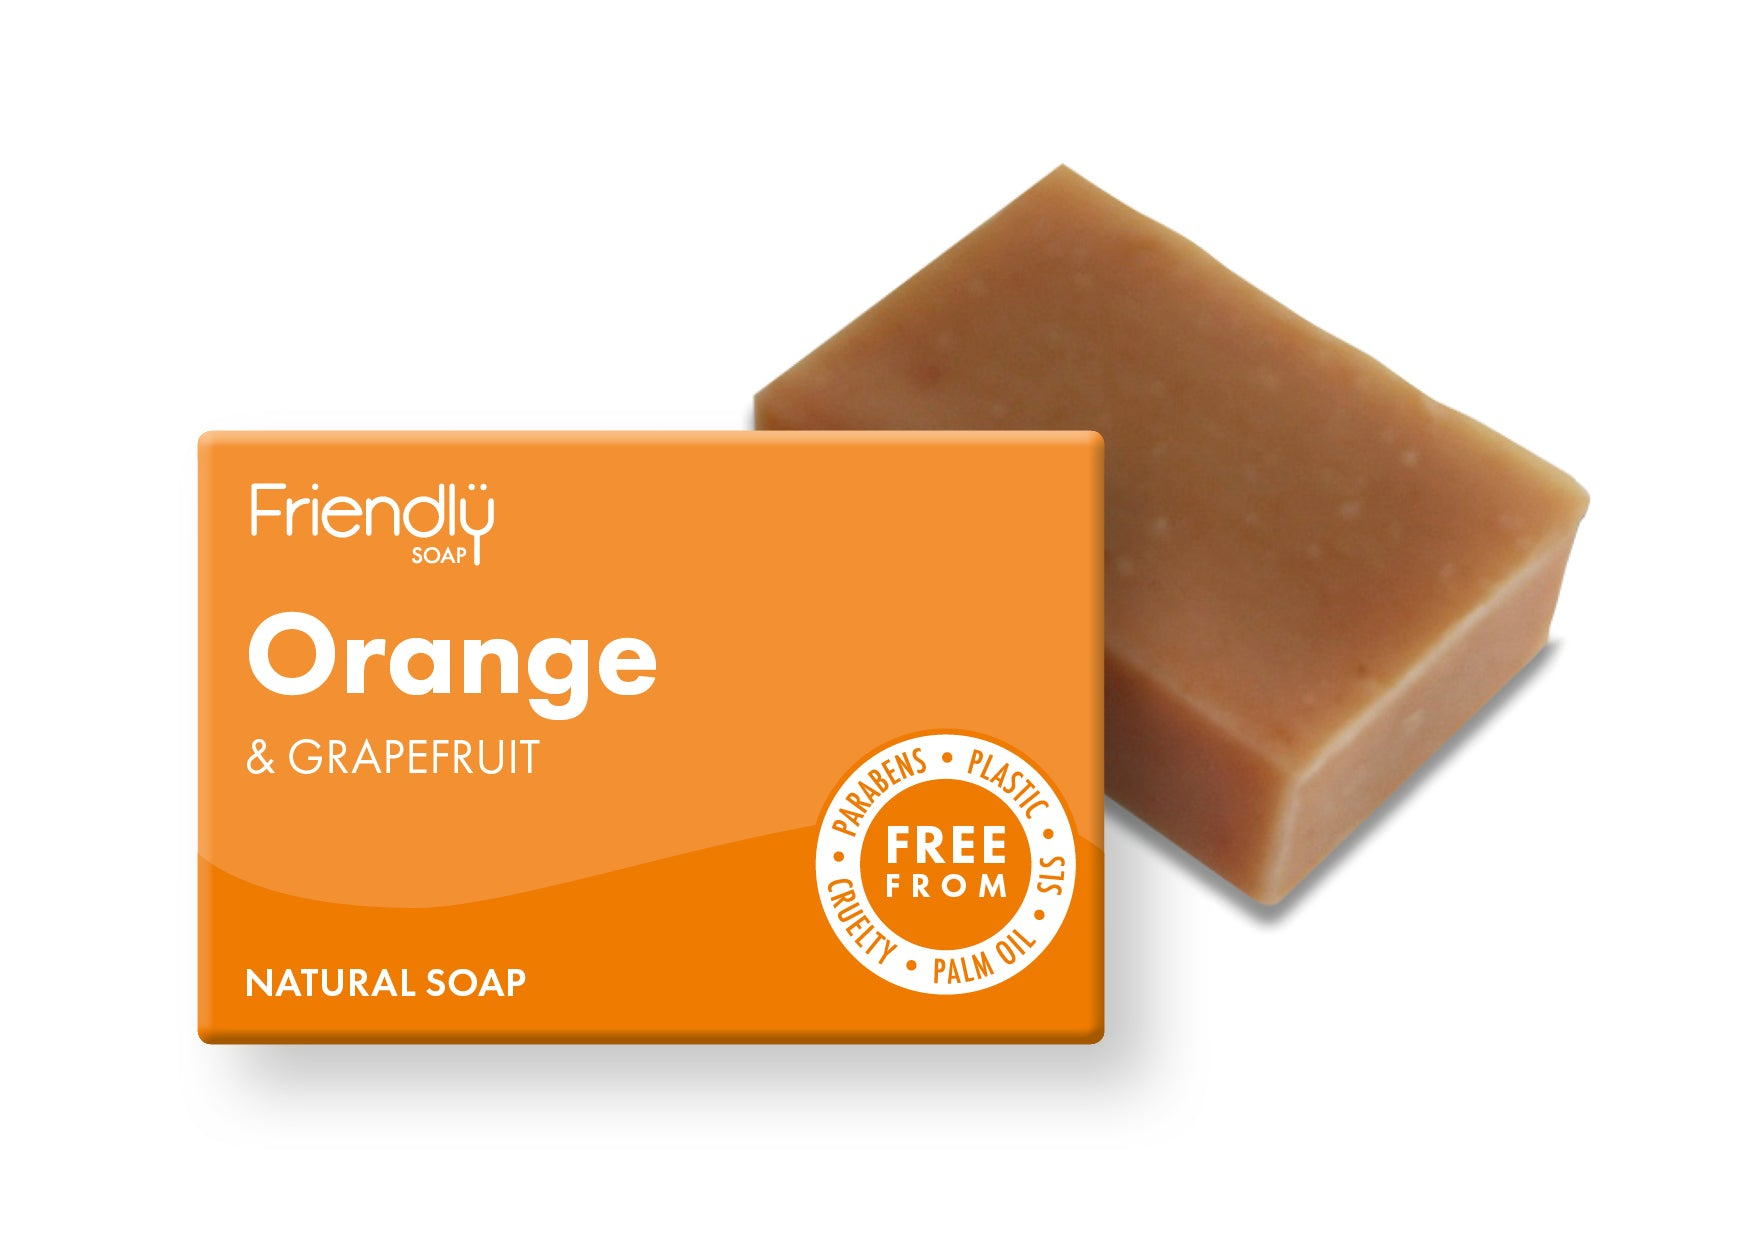 orange and grapefruit soap bar by friendly soap